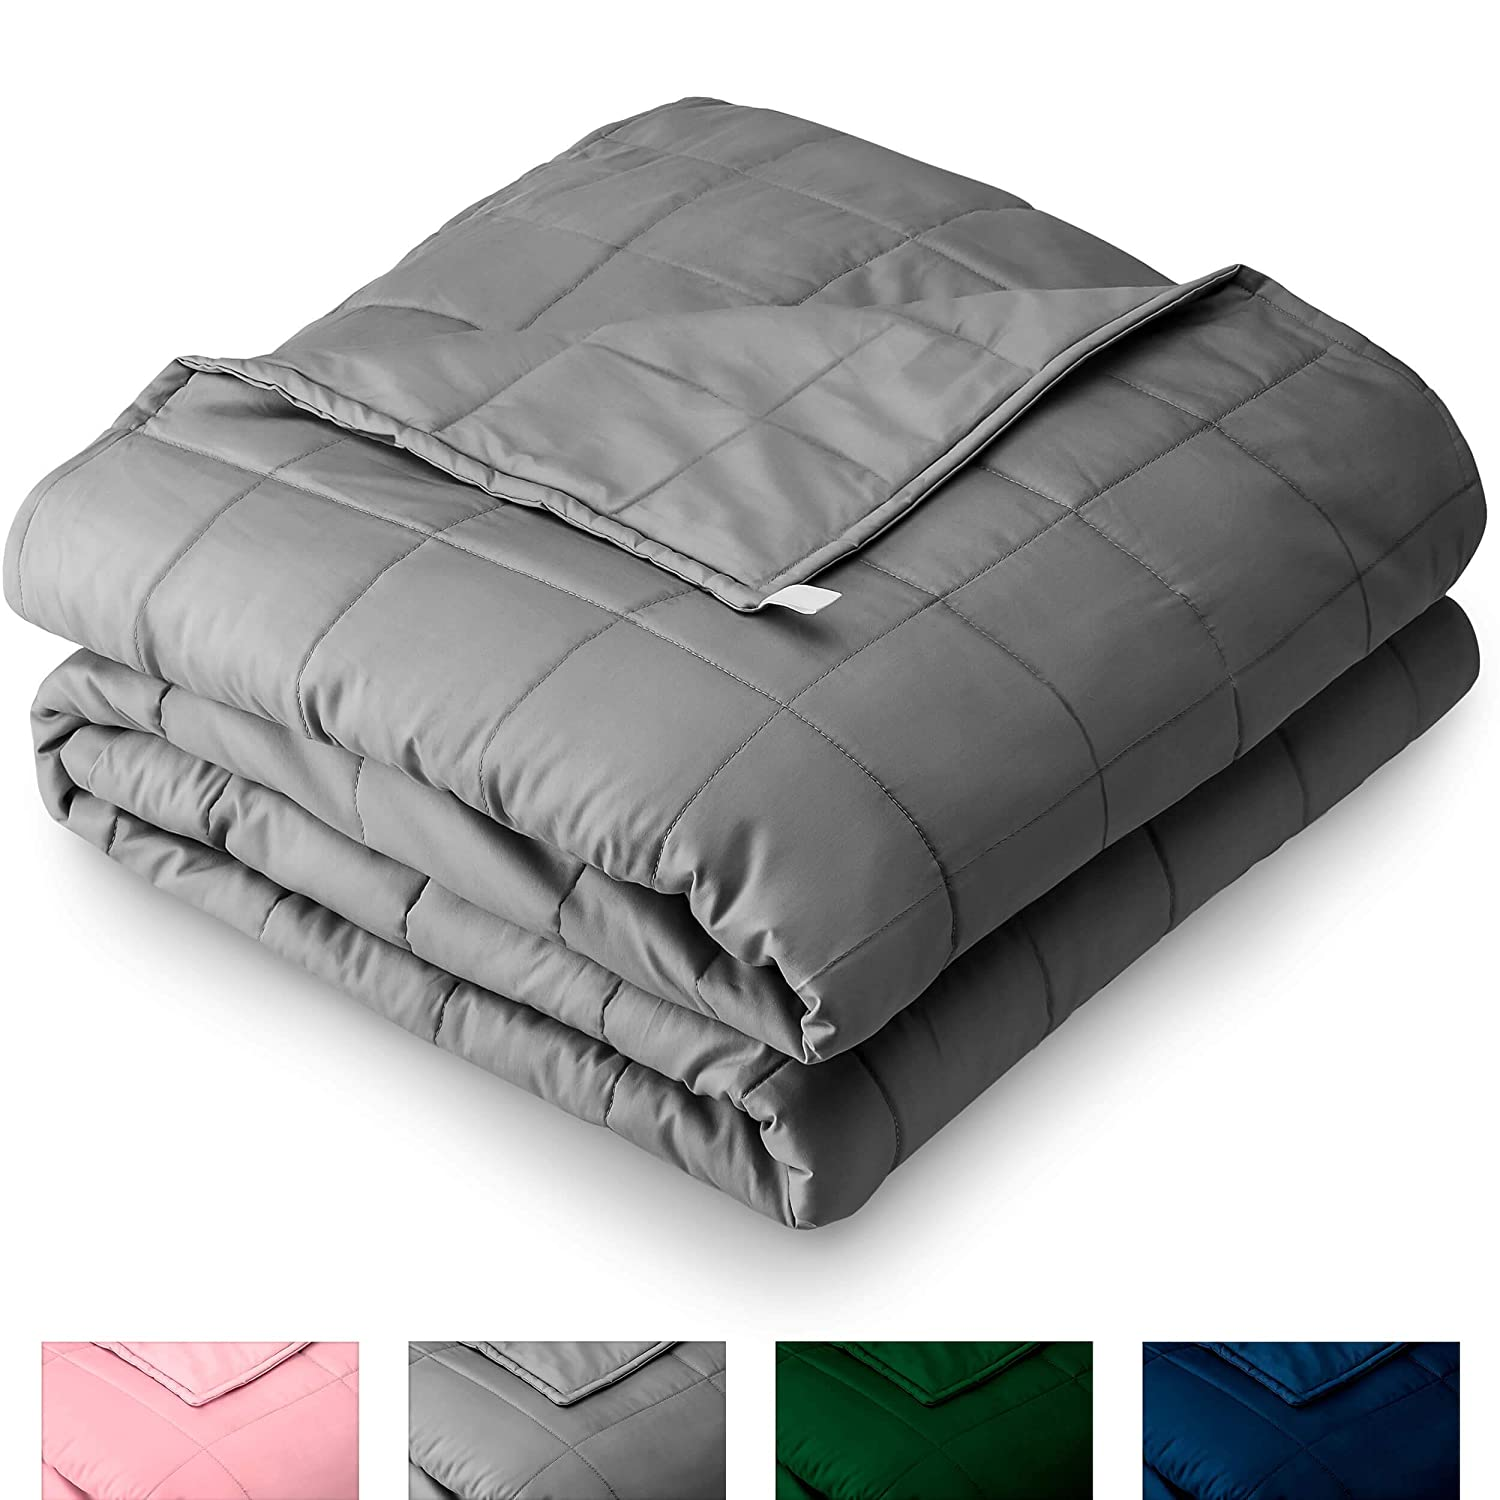 """Bare Home Weighted Blanket for Kids 10lb (40"""" x 60"""") - All-Natural 100% Cotton - Premium Heavy Blanket Nontoxic Glass Beads (Grey, 40""""x60"""") 815B0hcOZeL"""